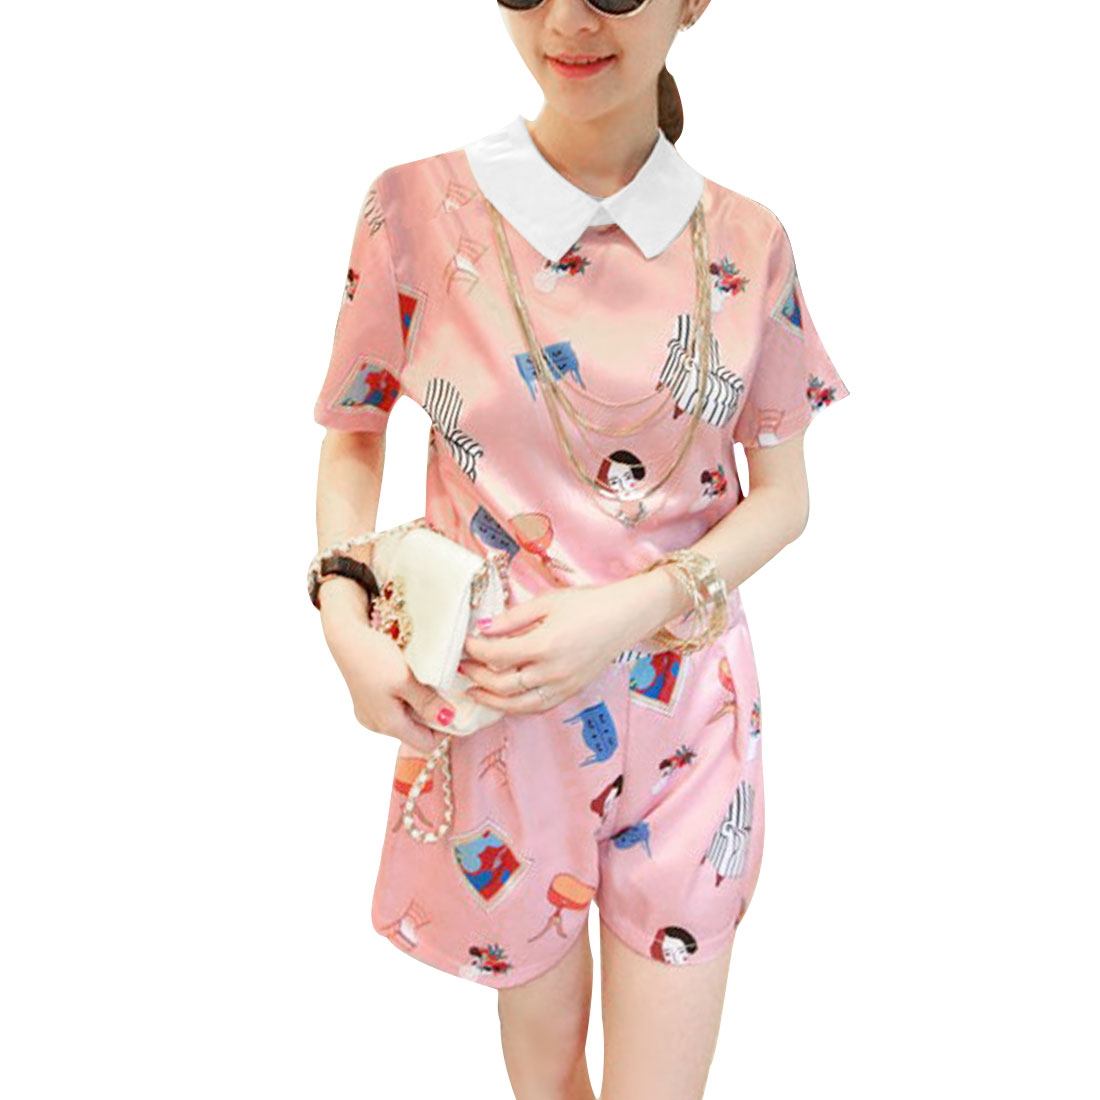 Lady Short Sleeve Cartoon Pattern Top w Loose Elastic Shorts Pink XS